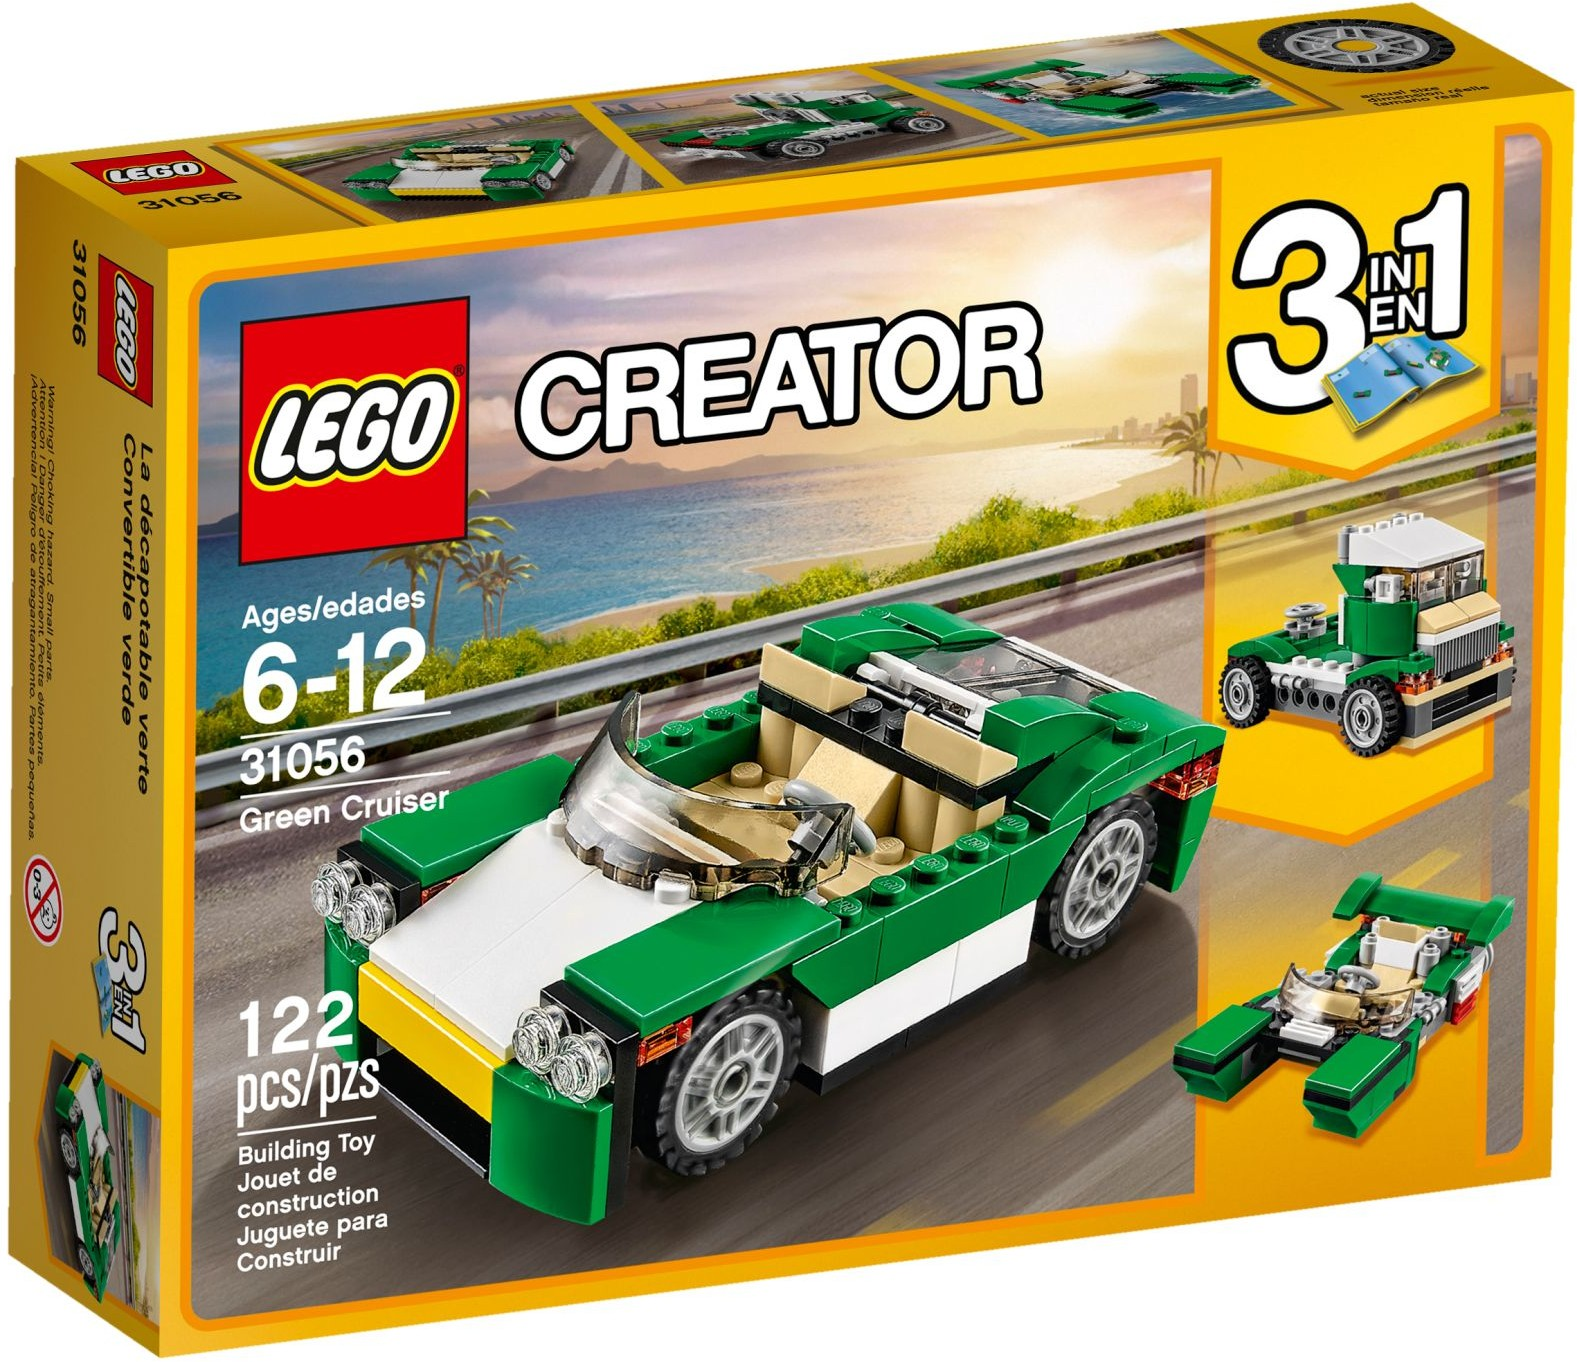 LEGO Creator Sets: 31056 Green Cruiser NEW